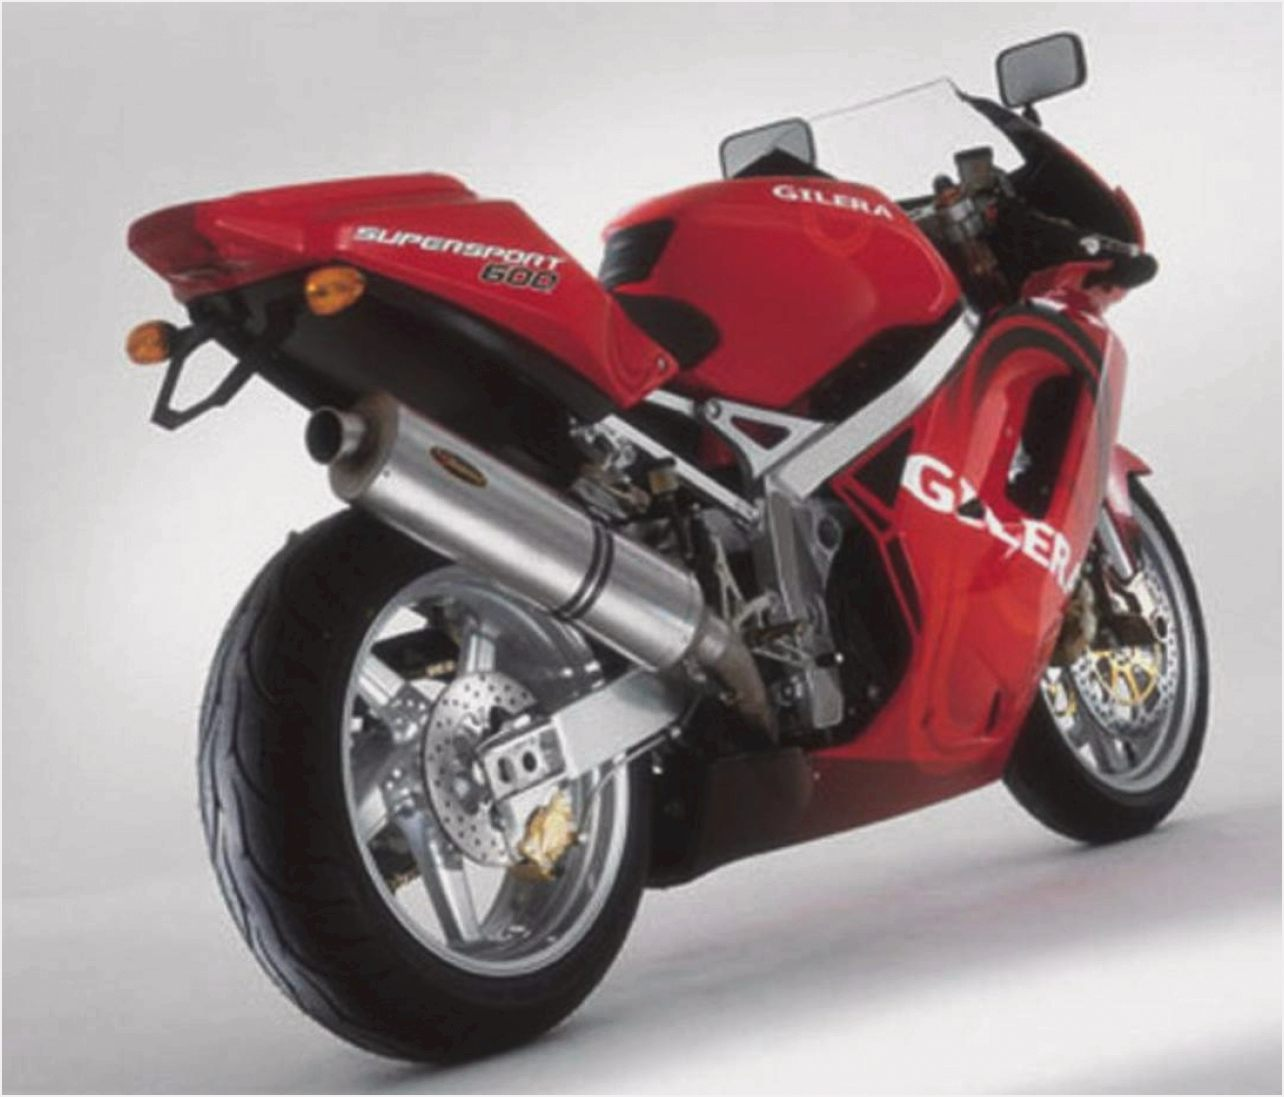 Gilera RC 600 C (reduced effect) #2